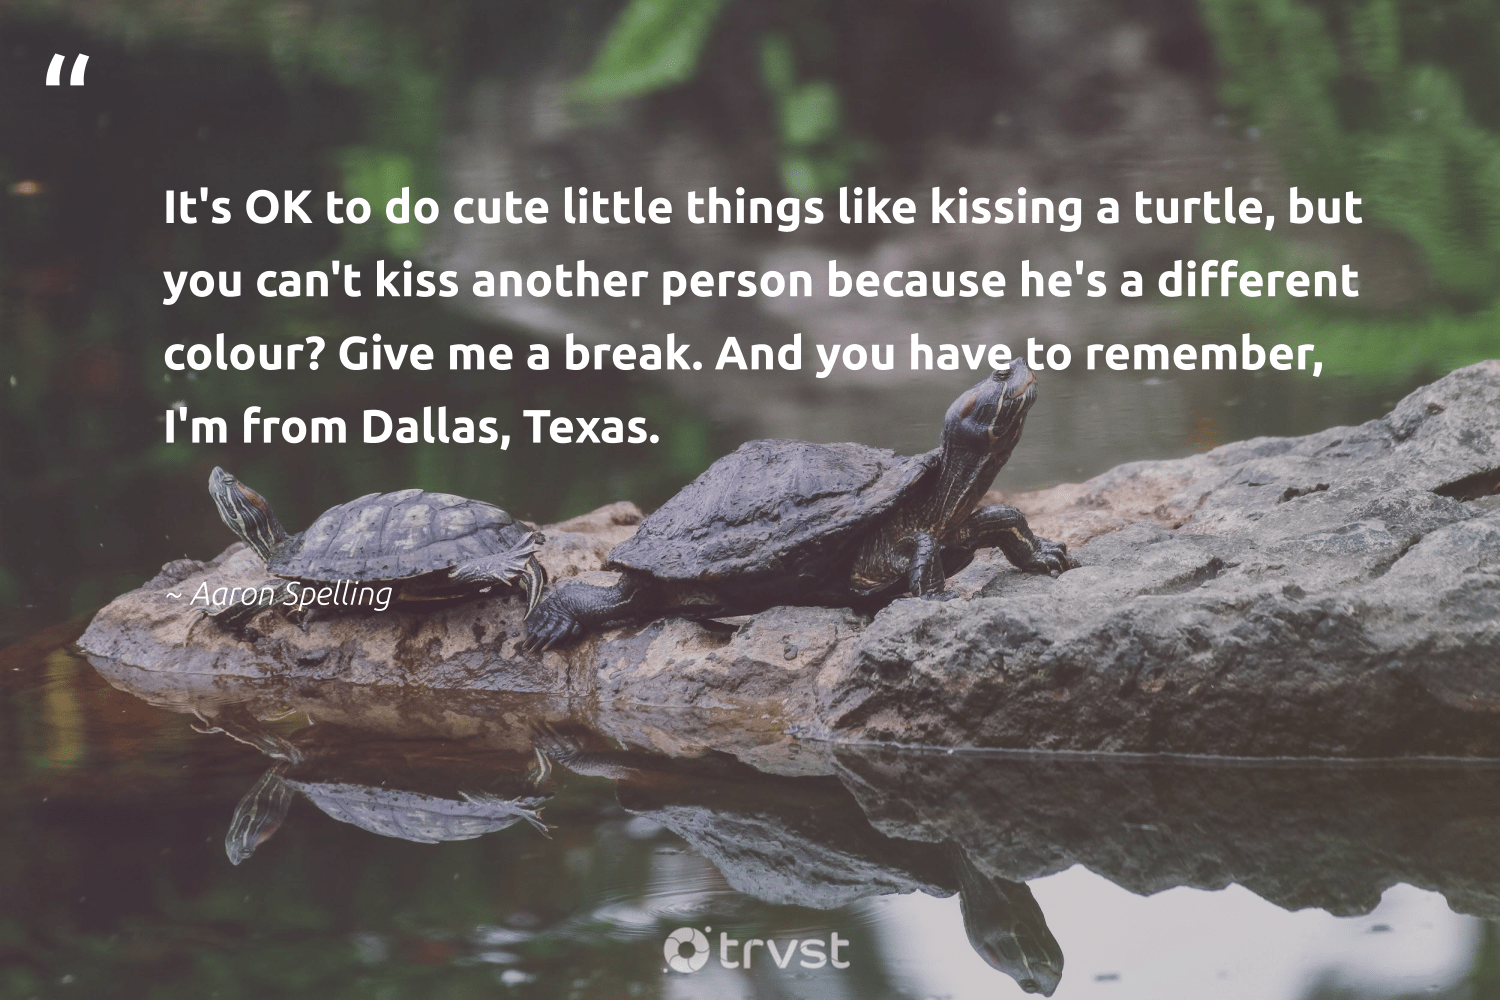 """It's OK to do cute little things like kissing a turtle, but you can't kiss another person because he's a different colour? Give me a break. And you have to remember, I'm from Dallas, Texas.""  - Aaron Spelling #trvst #quotes #turtle #turtles #collectiveaction #savetheturtle #dogood #wildlife #thinkgreen #oceanconservation #ecoconscious #biodiversity"